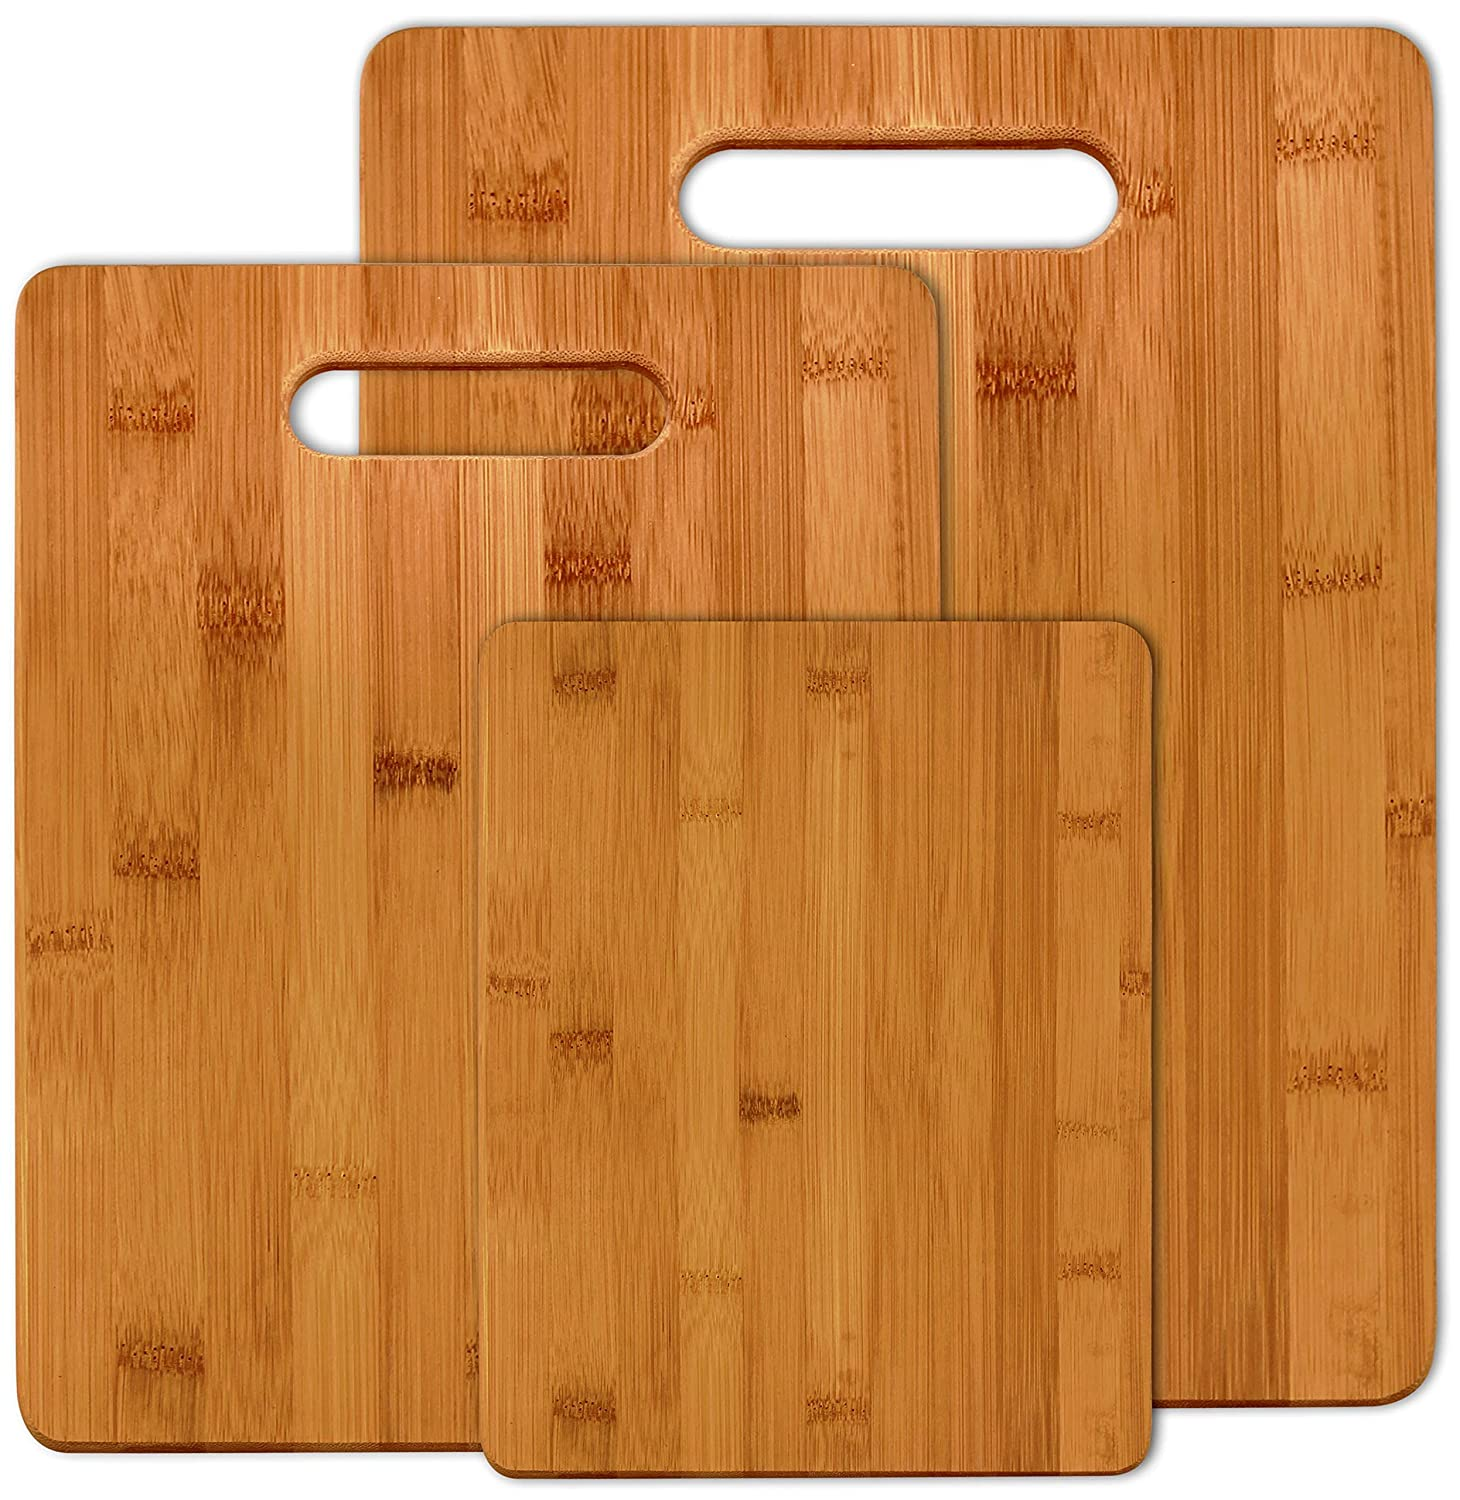 best chopping board